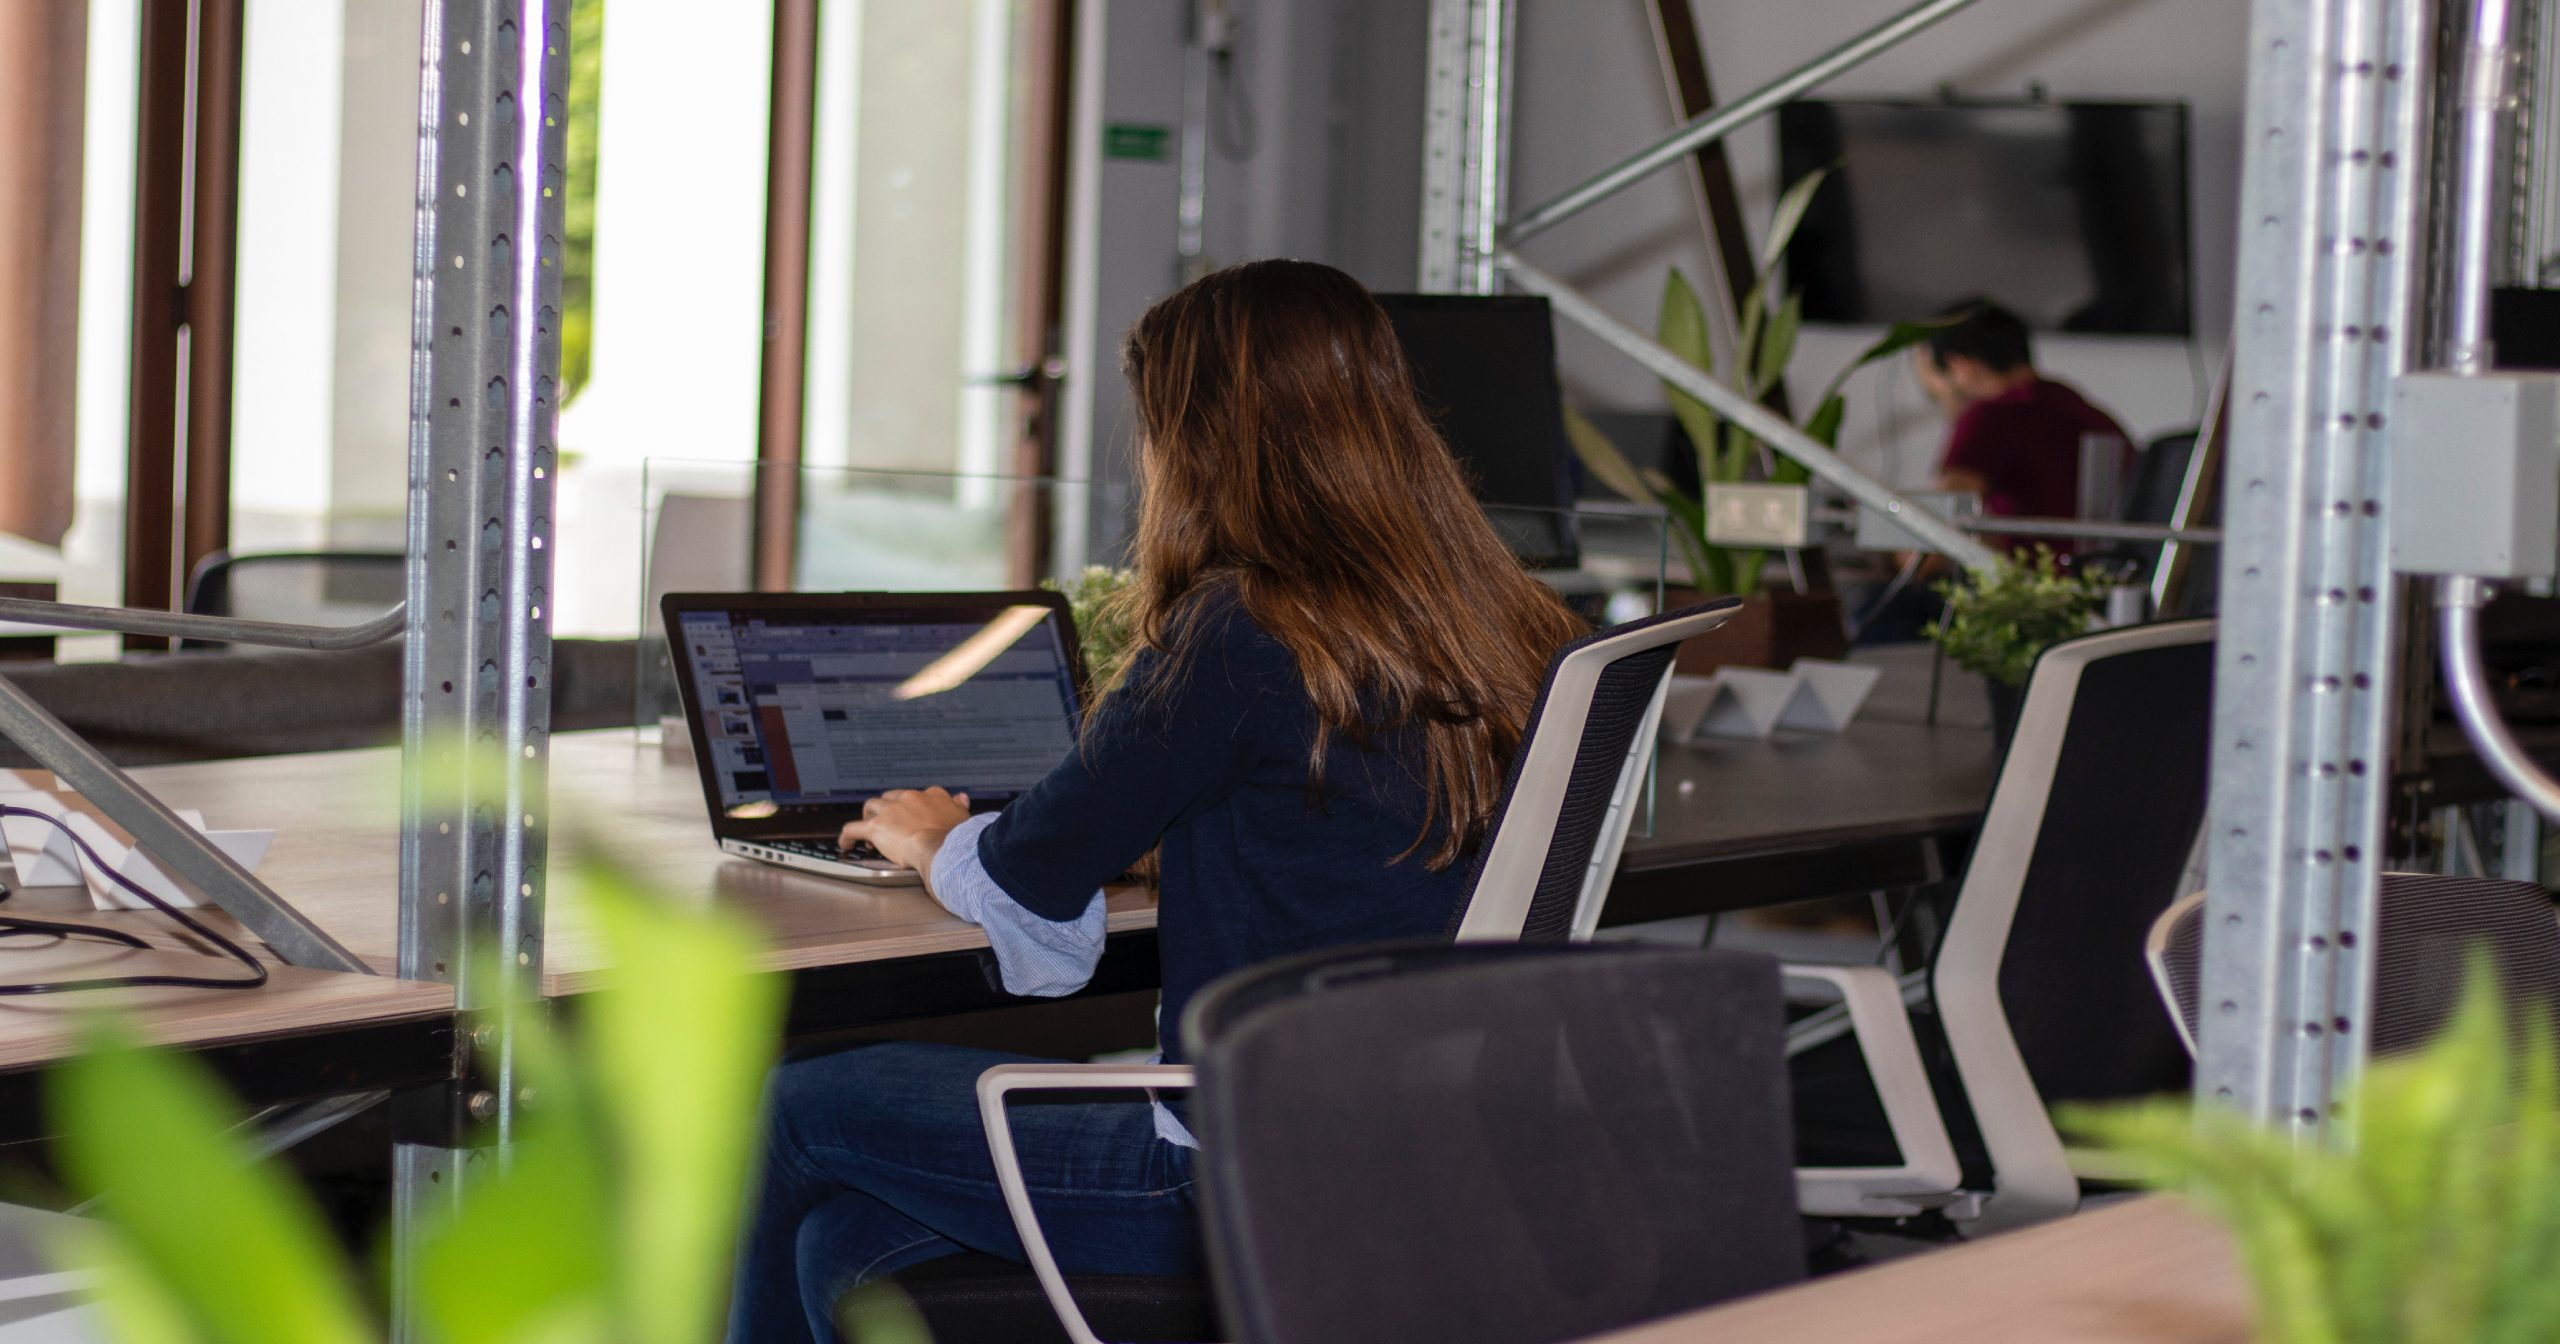 4 Important Things You Can Learn from Coworking Spaces During the Pandemic